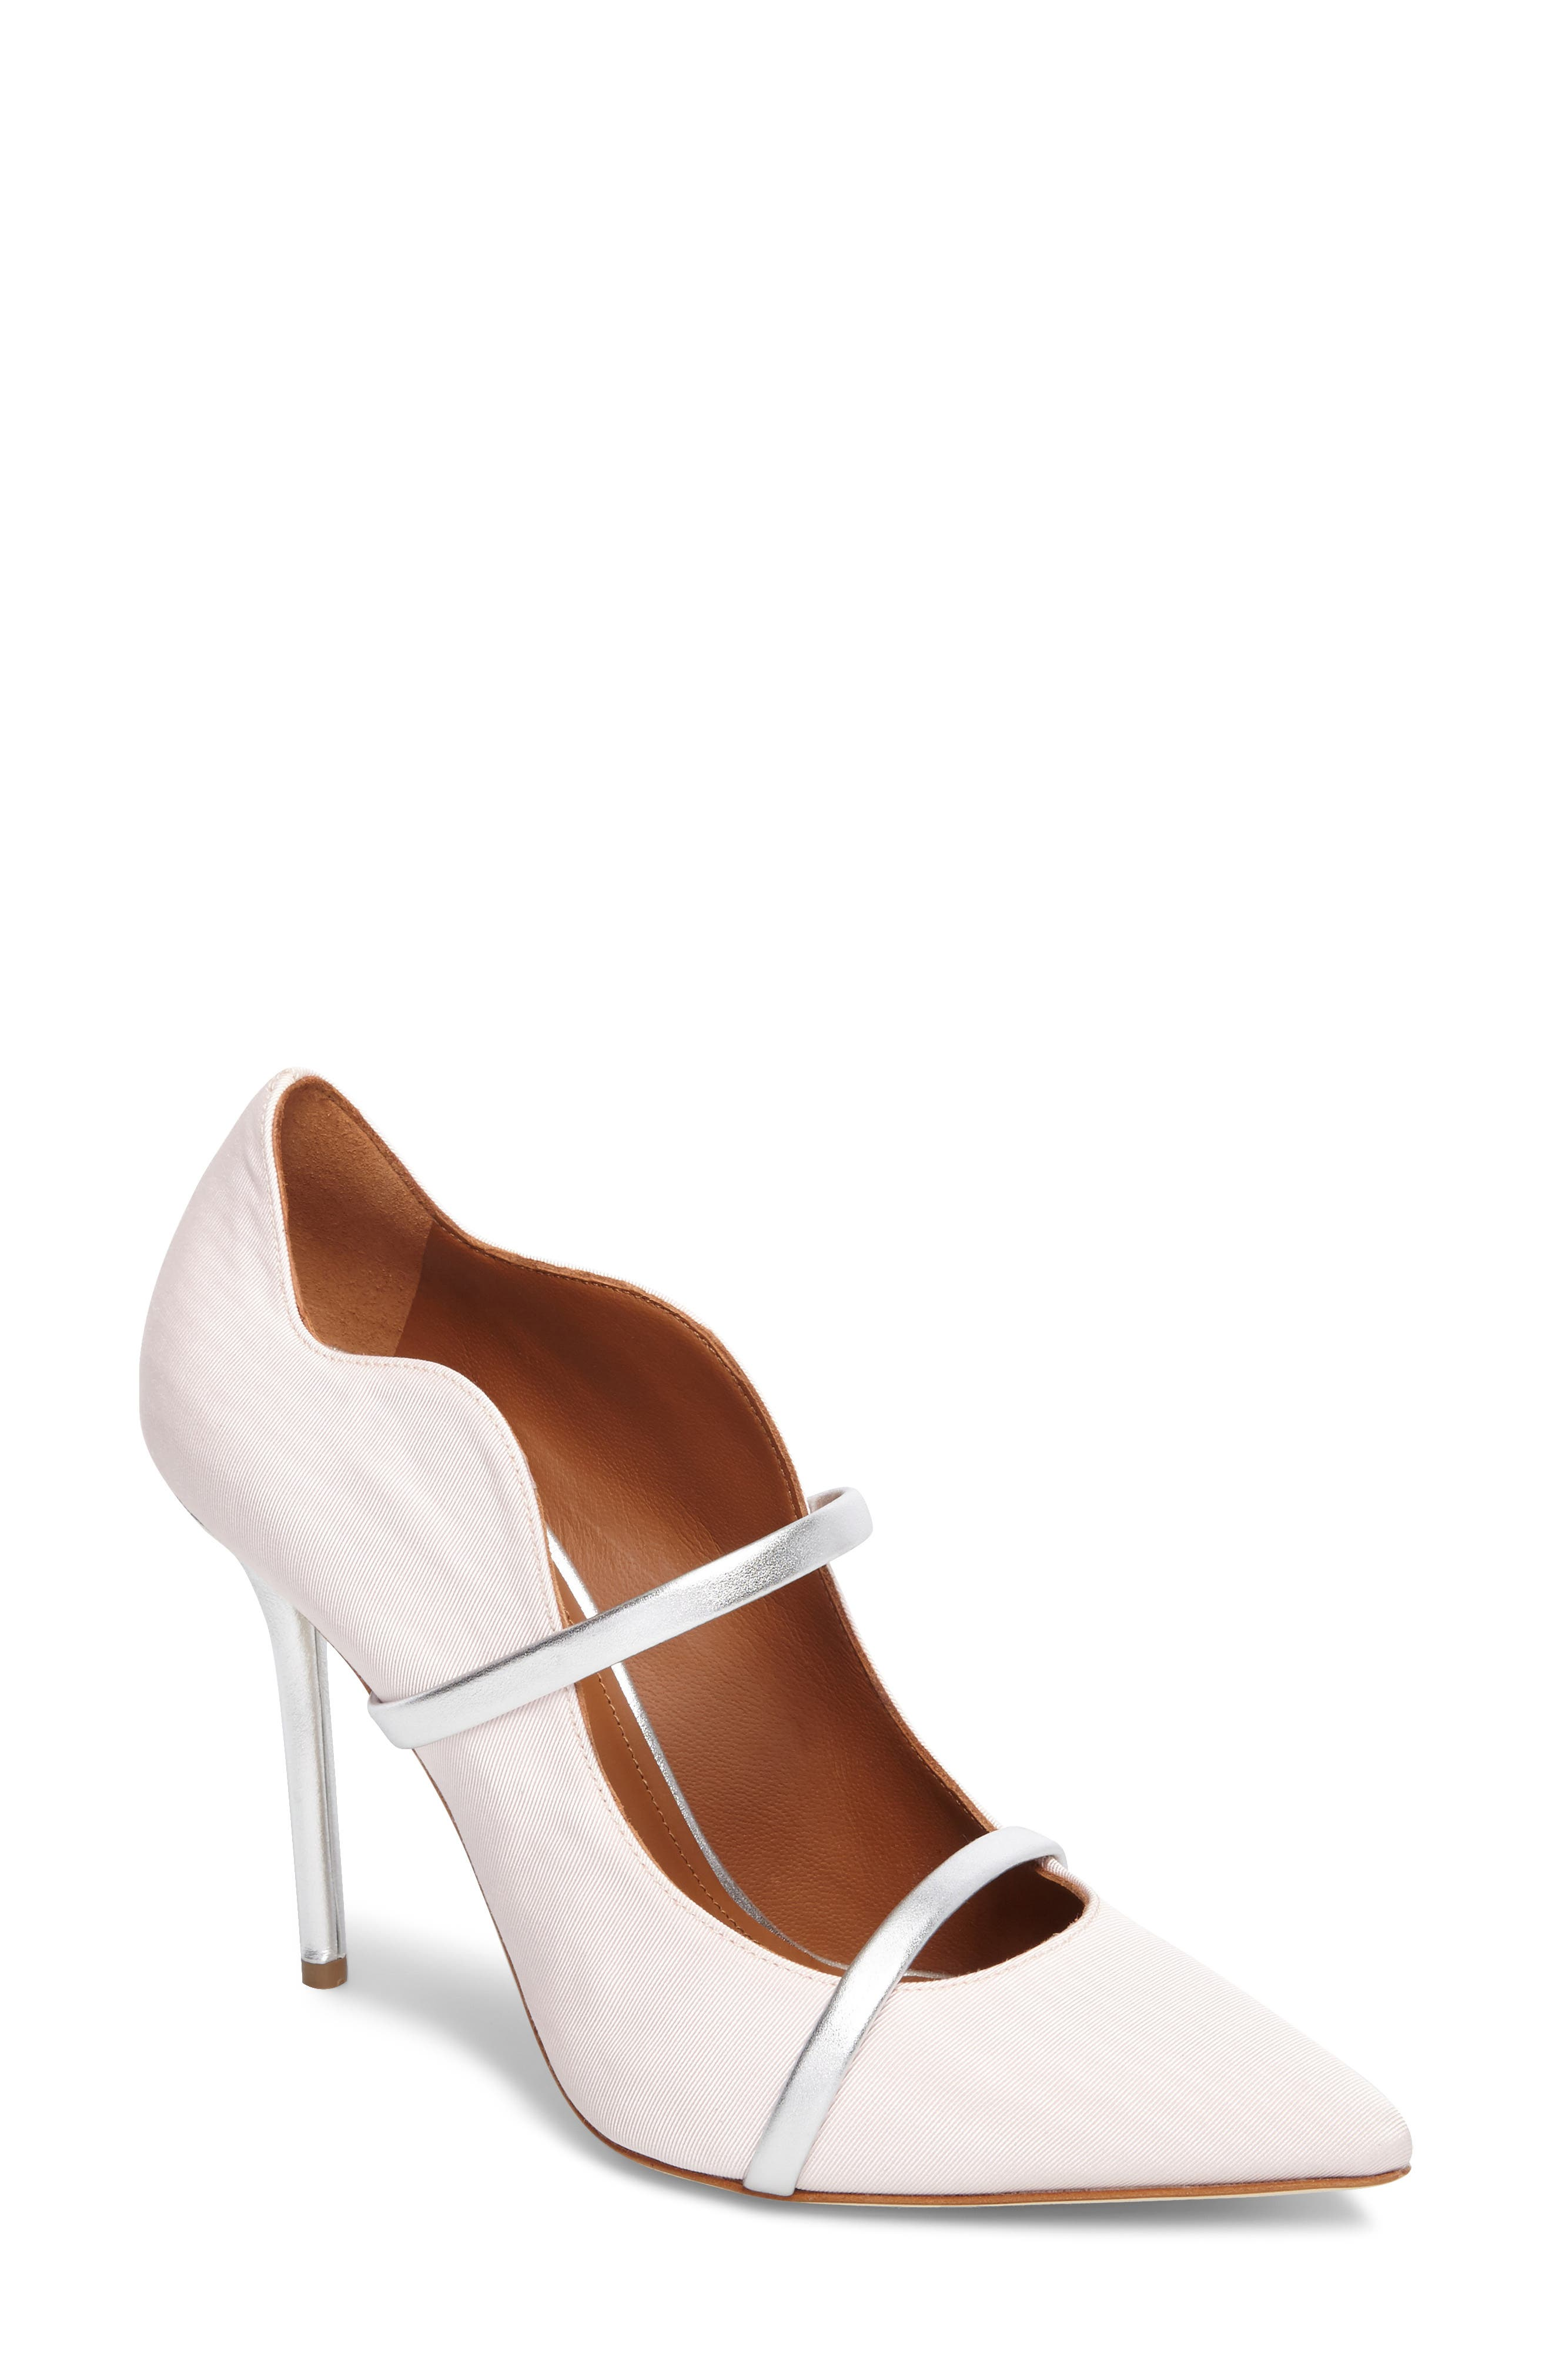 Alternate Image 1 Selected - Malone Souliers Maureen Double Band Pump (Women)